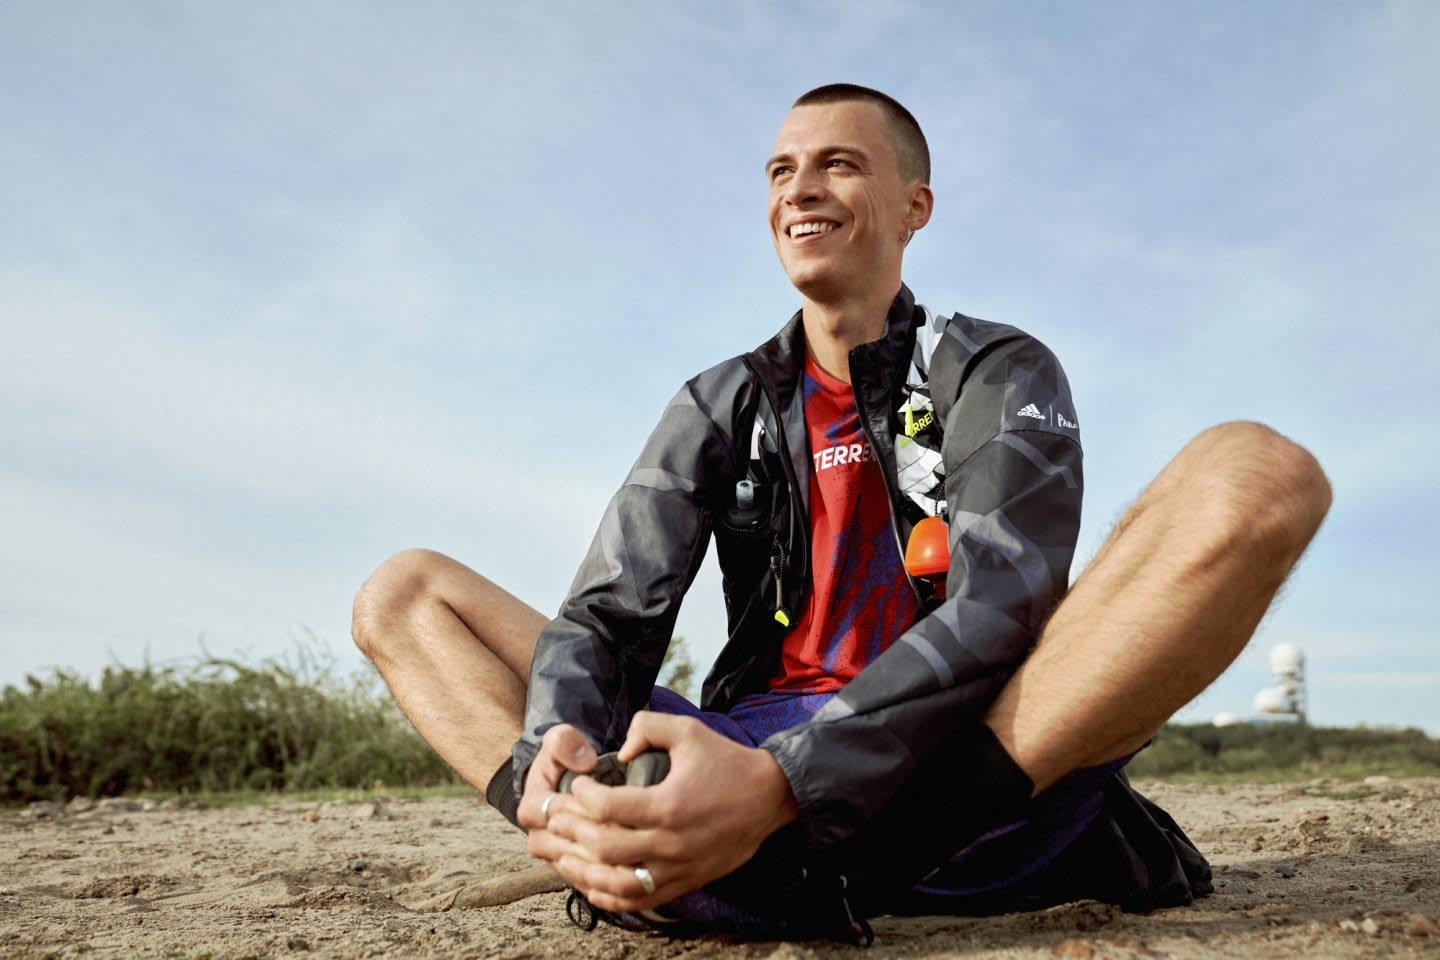 Man smiling in the outdoors while doing butterfly pose, stretching, sports, sport, fitness, adidas